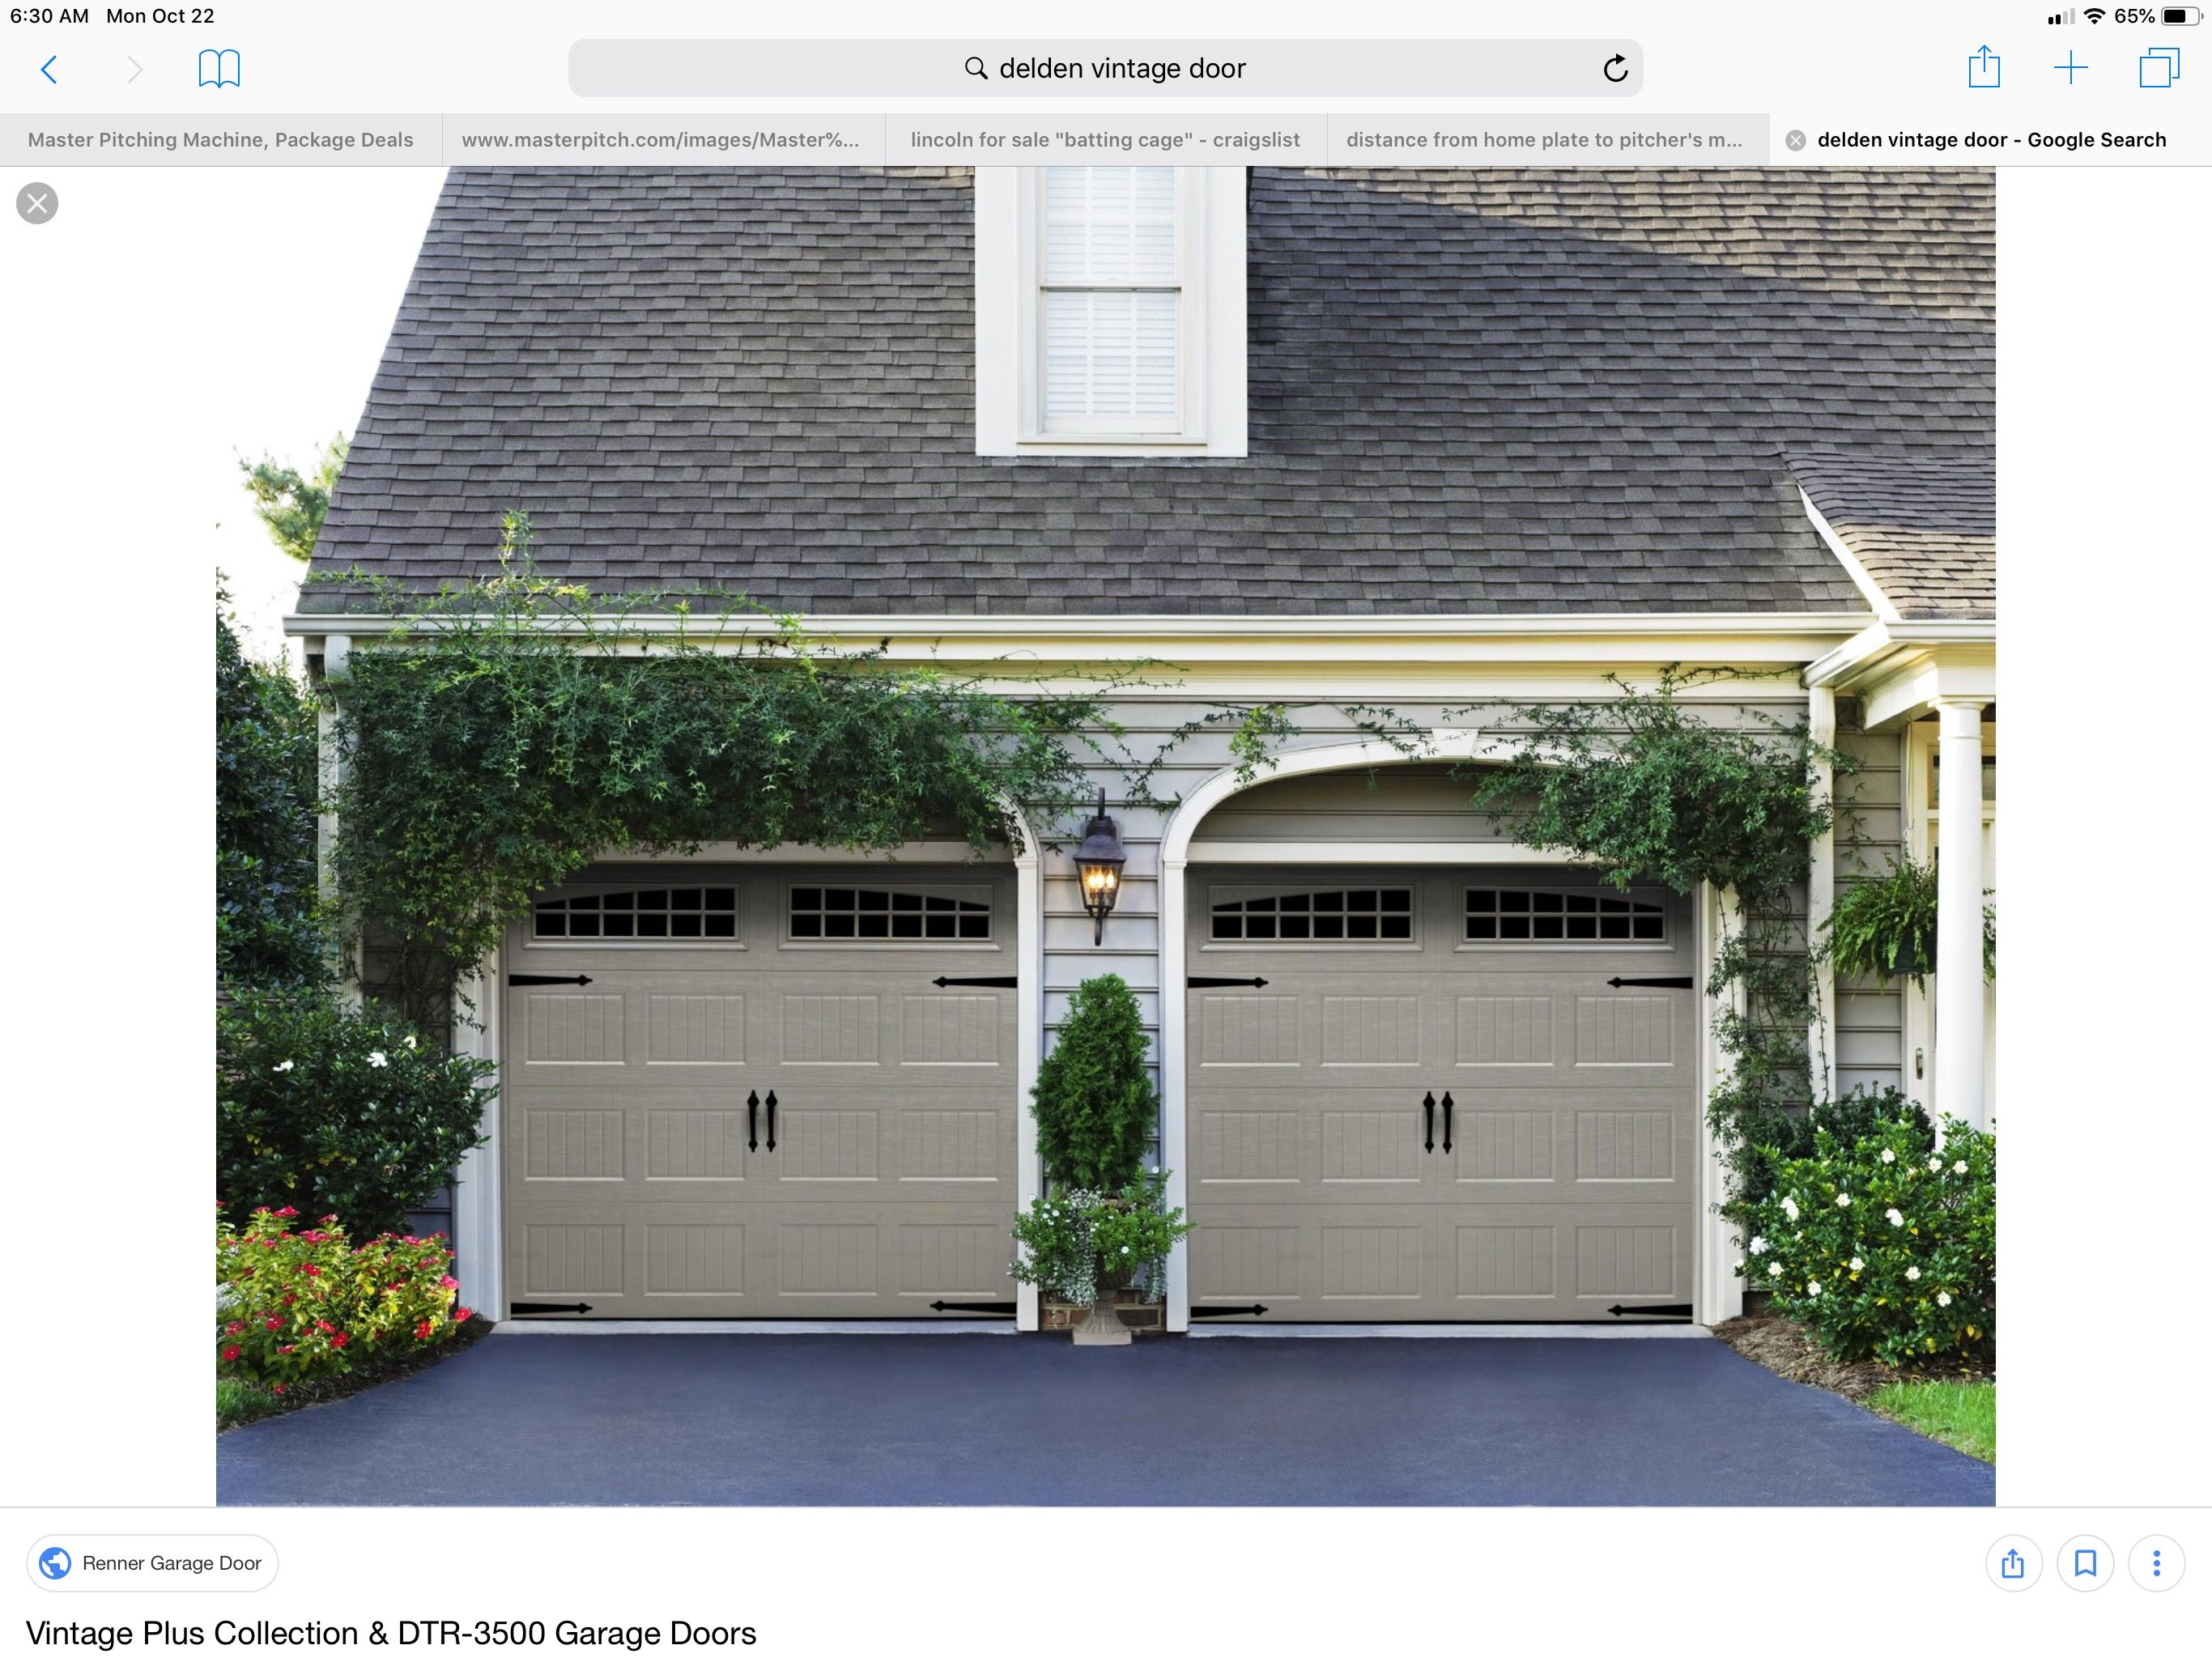 Pin By Elizabeth Mortimer On New House Build Garage Door Styles Carriage Style Garage Doors Garage Door Colors